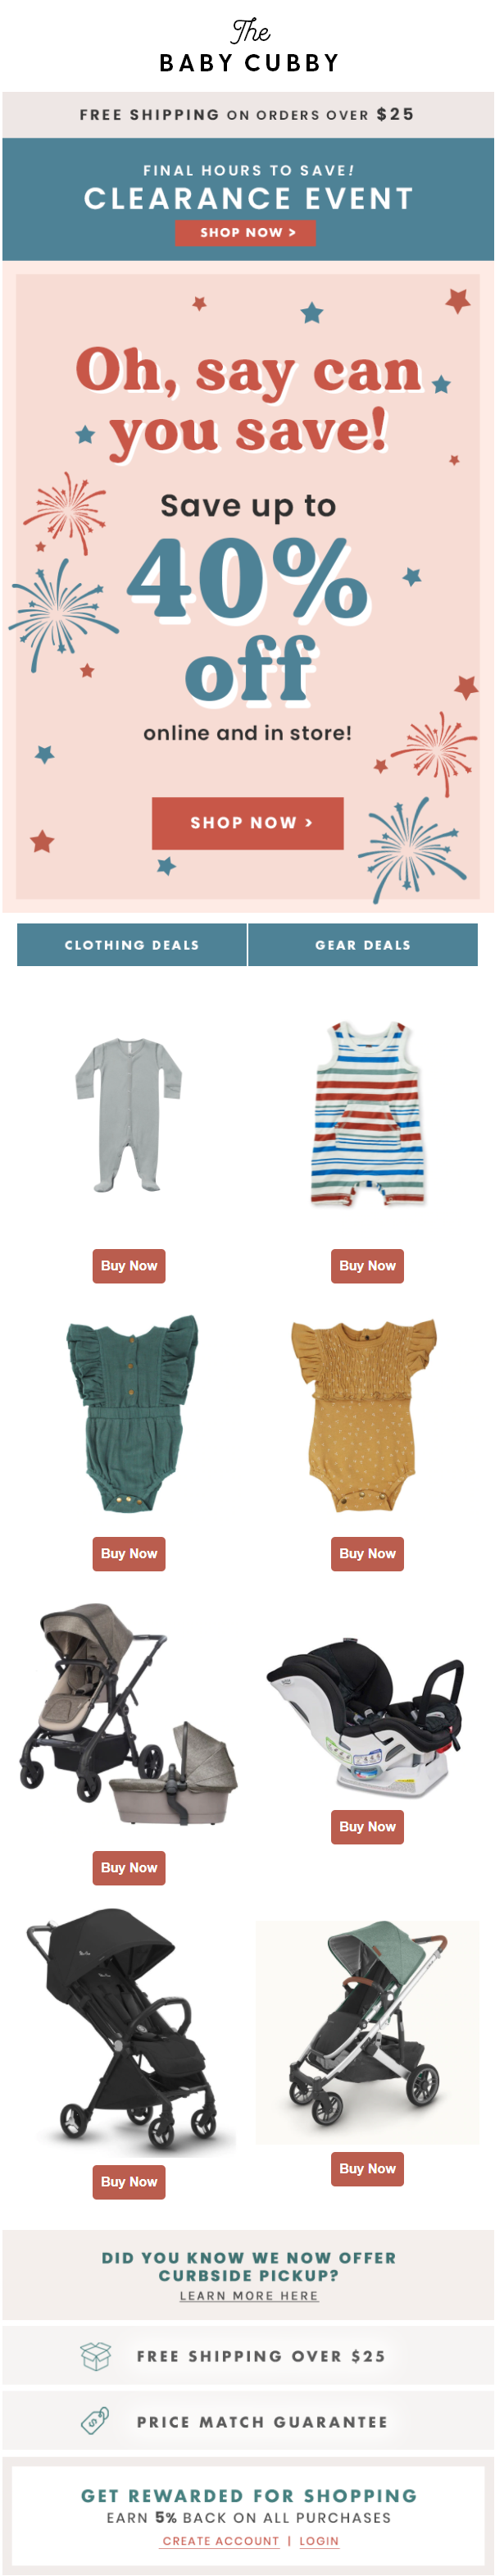 baby-cubby-hurry-4th-of-july-markdowns-end-tonight